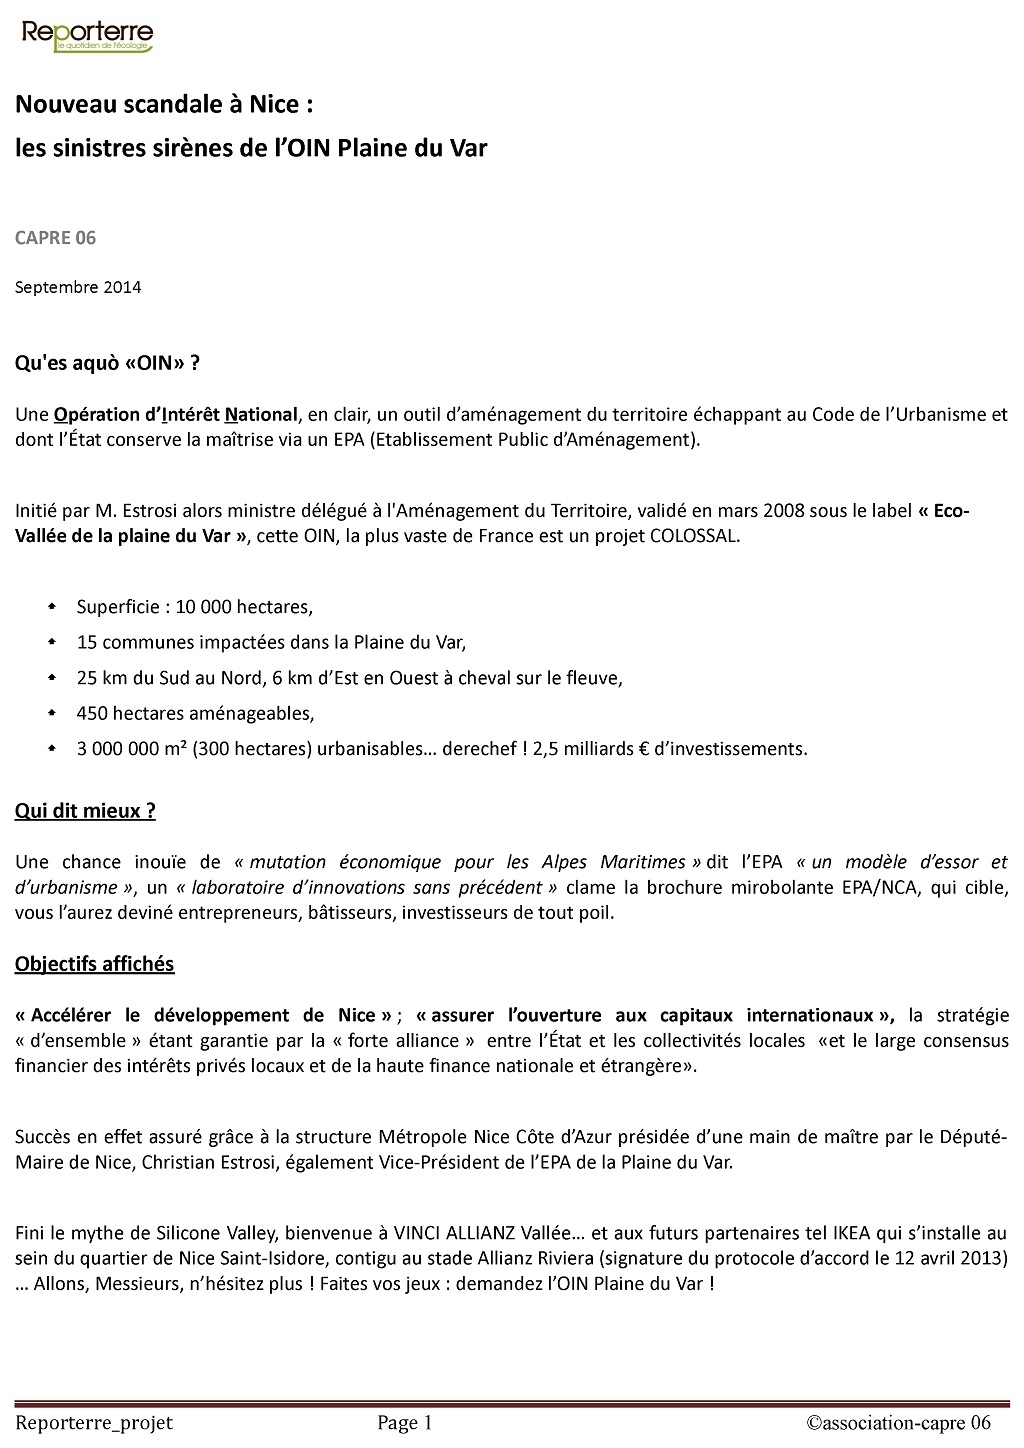 2014 09 oin pdv reporterre projet page 1